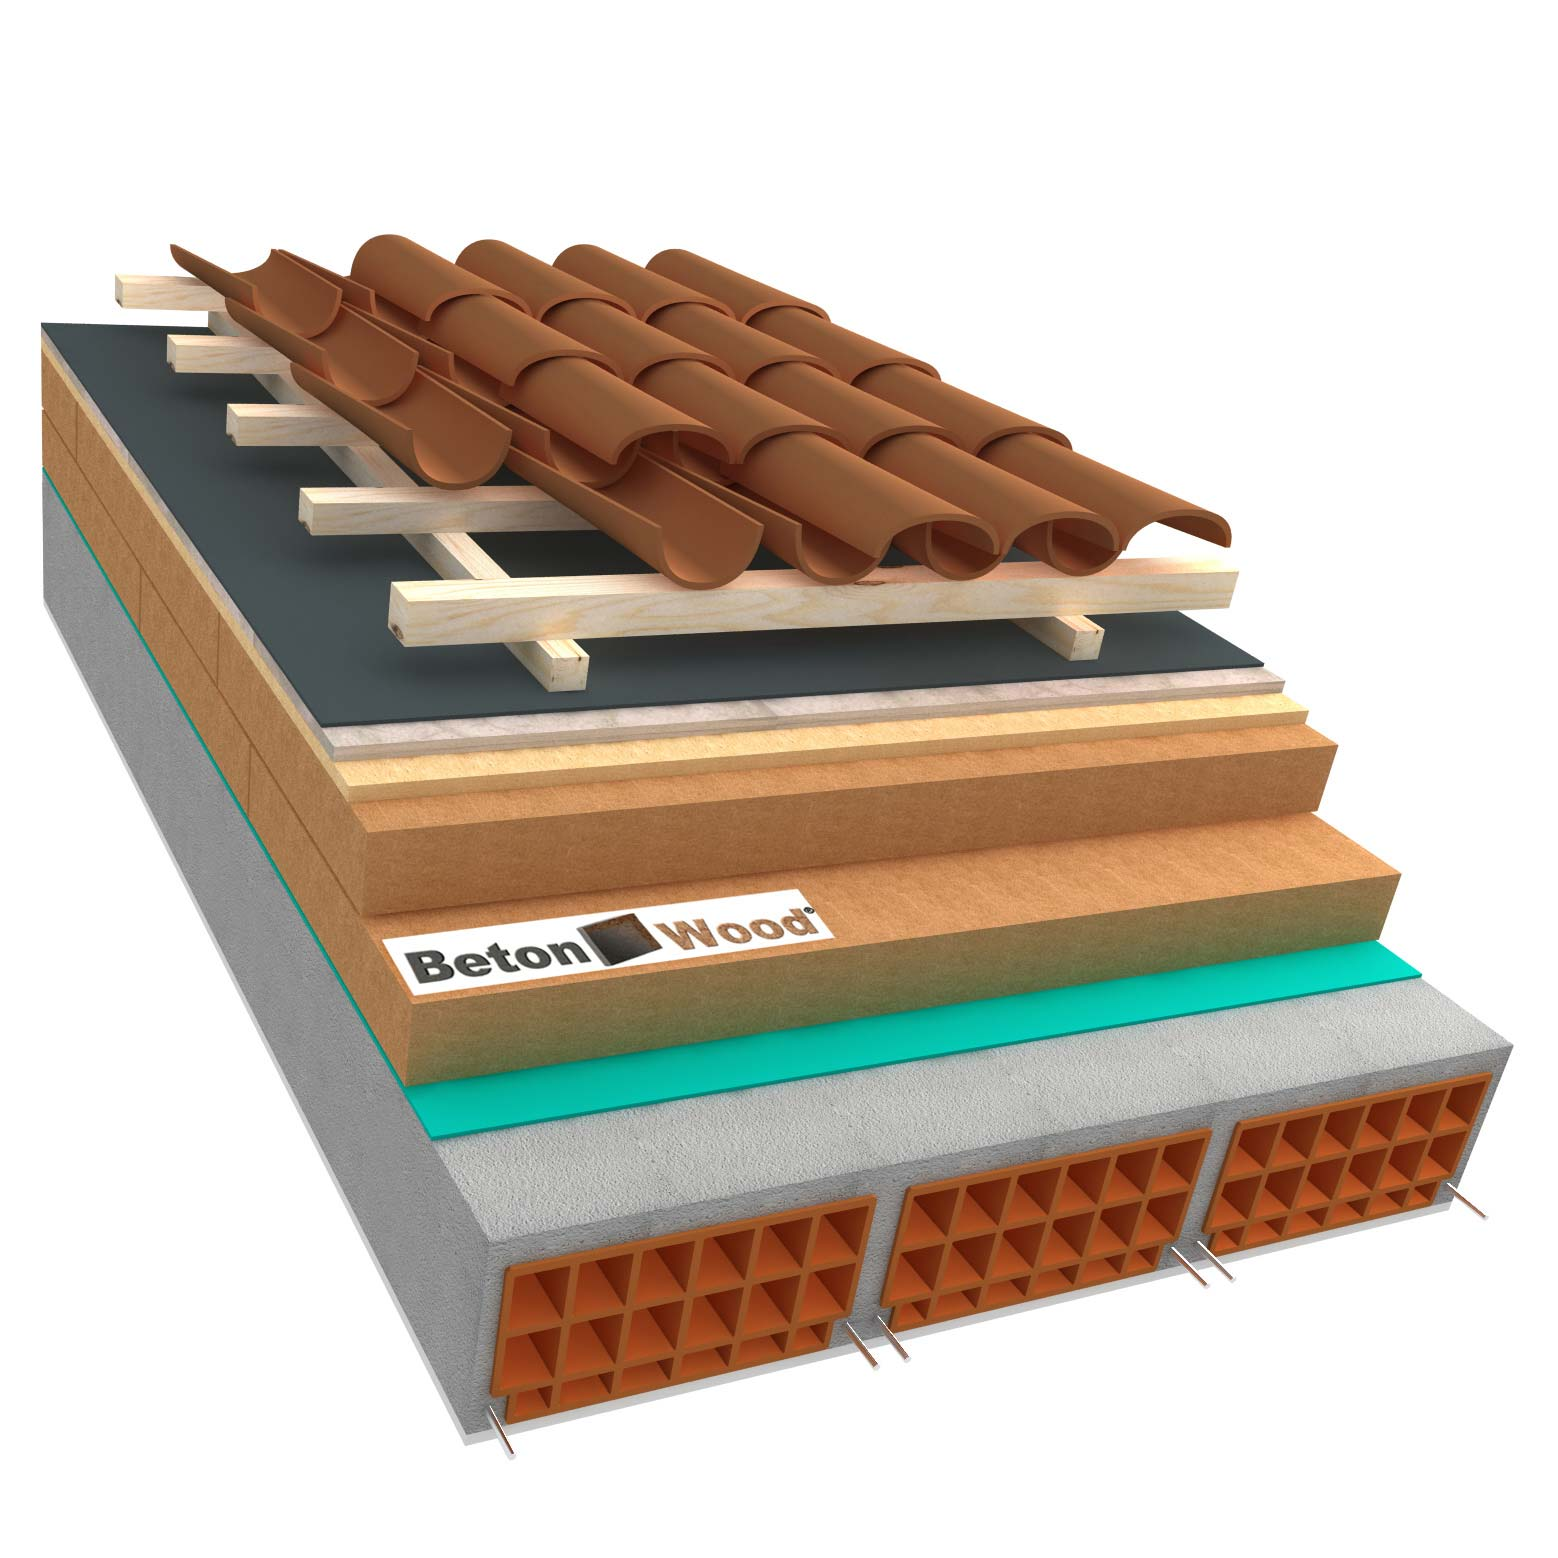 Ventilated roof with fiber wood Isorel, Special and cement bonded particle boards on concrete